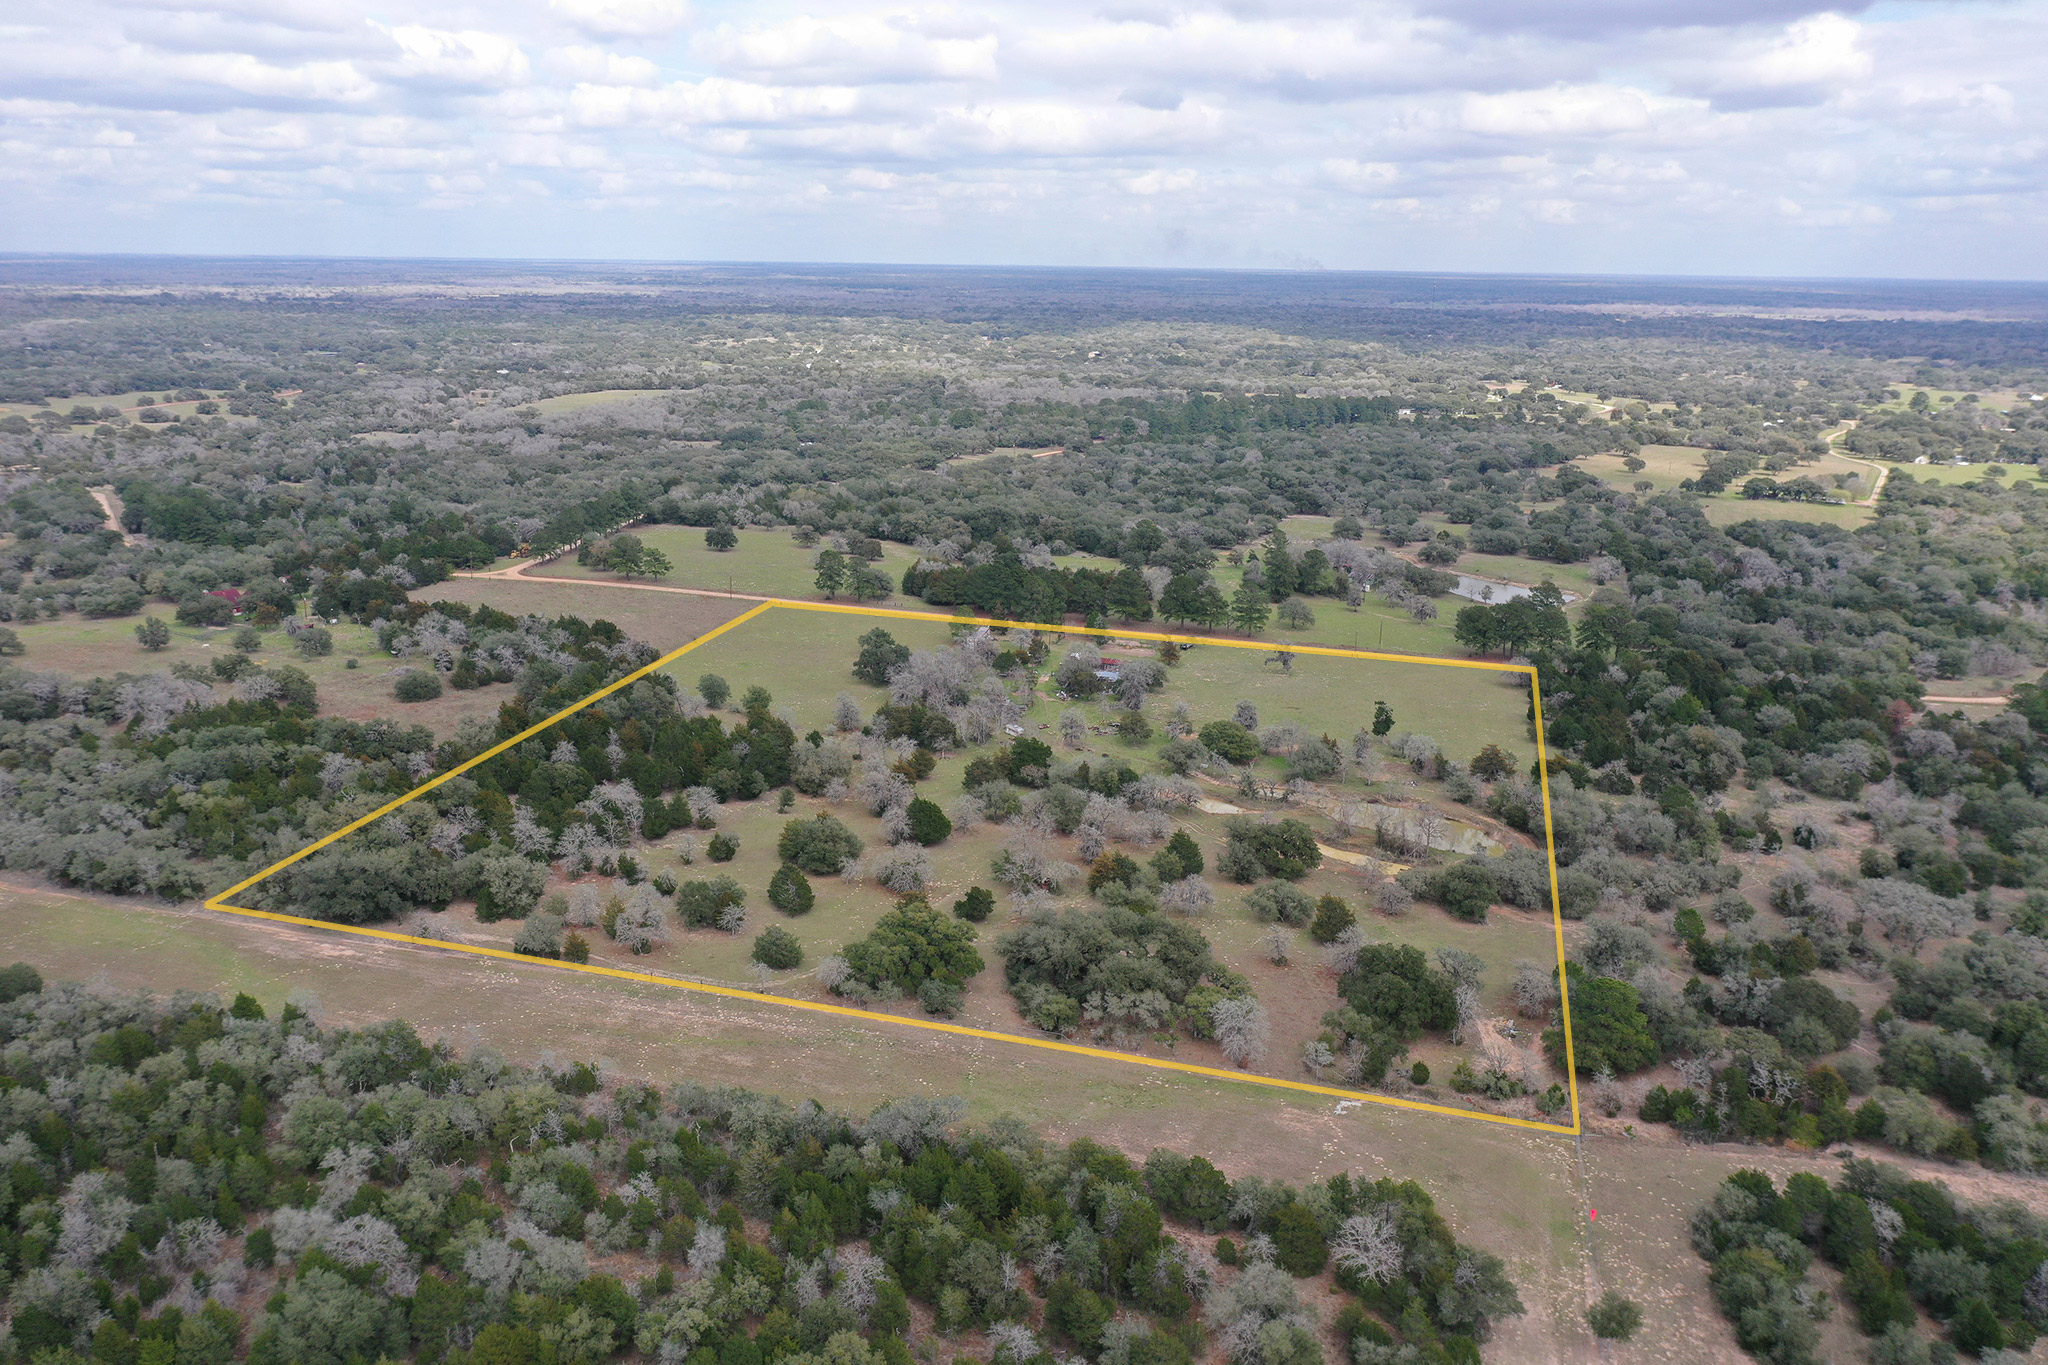 With some pipe fencing, a water well, septic and electricity already in place, this 17.42 acres of land is ready for a new owner. Look for the bluebonnets, pear, plum, peach, Japanese plum and crepe myrtle trees to bloom in the spring. The owner has cleared the original thick trees, so now it's well suited for cattle or horses, with tank ponds, fencing in good condition, and cattle pens and chute. Turkeys, deer, hogs and coyotes are some of the wildlife you'll most likely see at some point. Located toward the end of the end a dead-end road, there's very little traffic driving by, so all you can hear is mother nature. An existing manufactured home can use some TLC, or you can use the existing utility set up for a new home or RV.